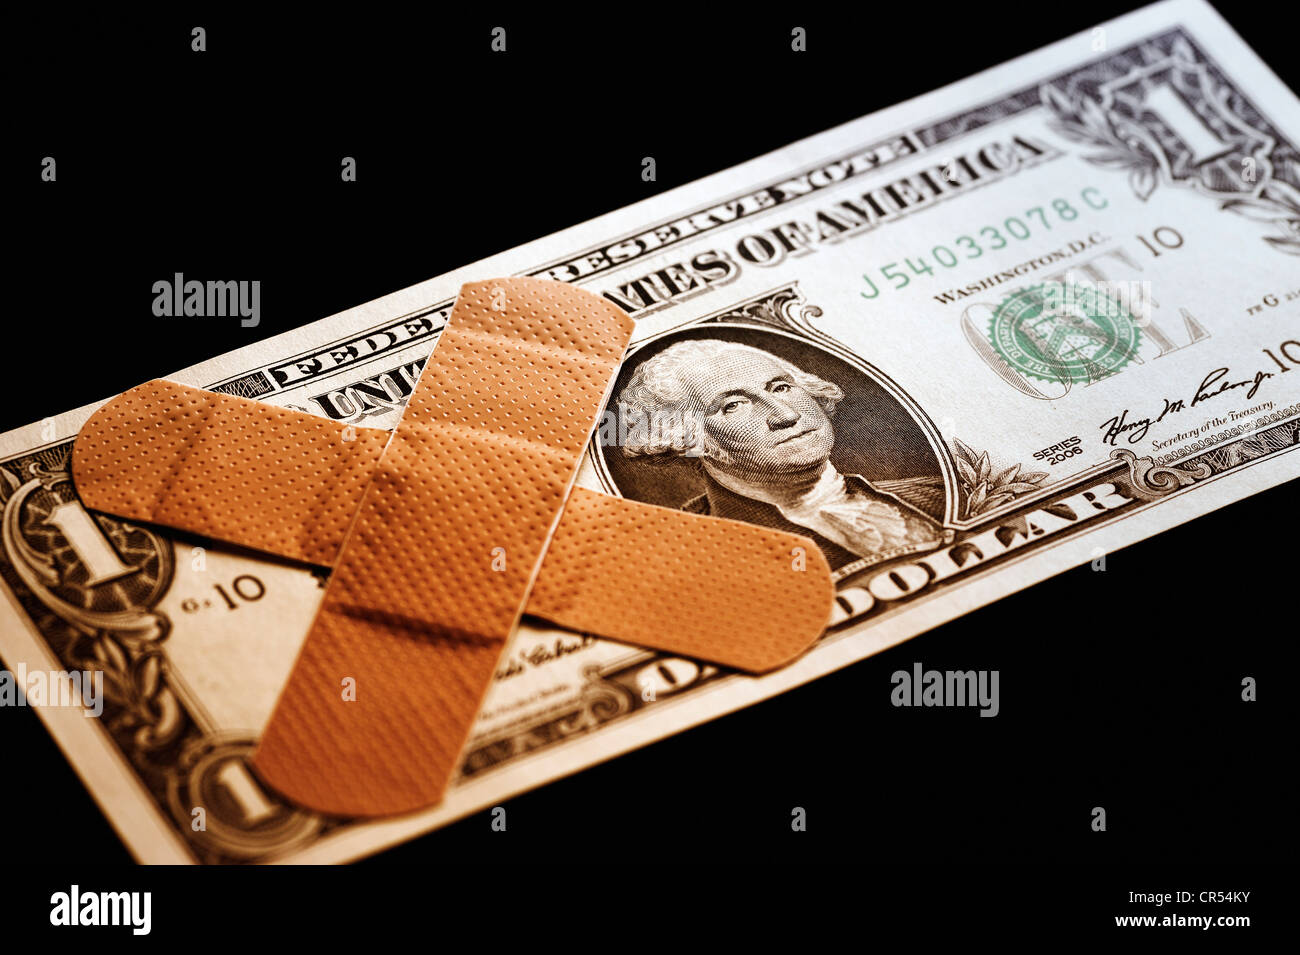 U.S. dollar with band-aid, symbolic image for the national debt of the USA - Stock Image